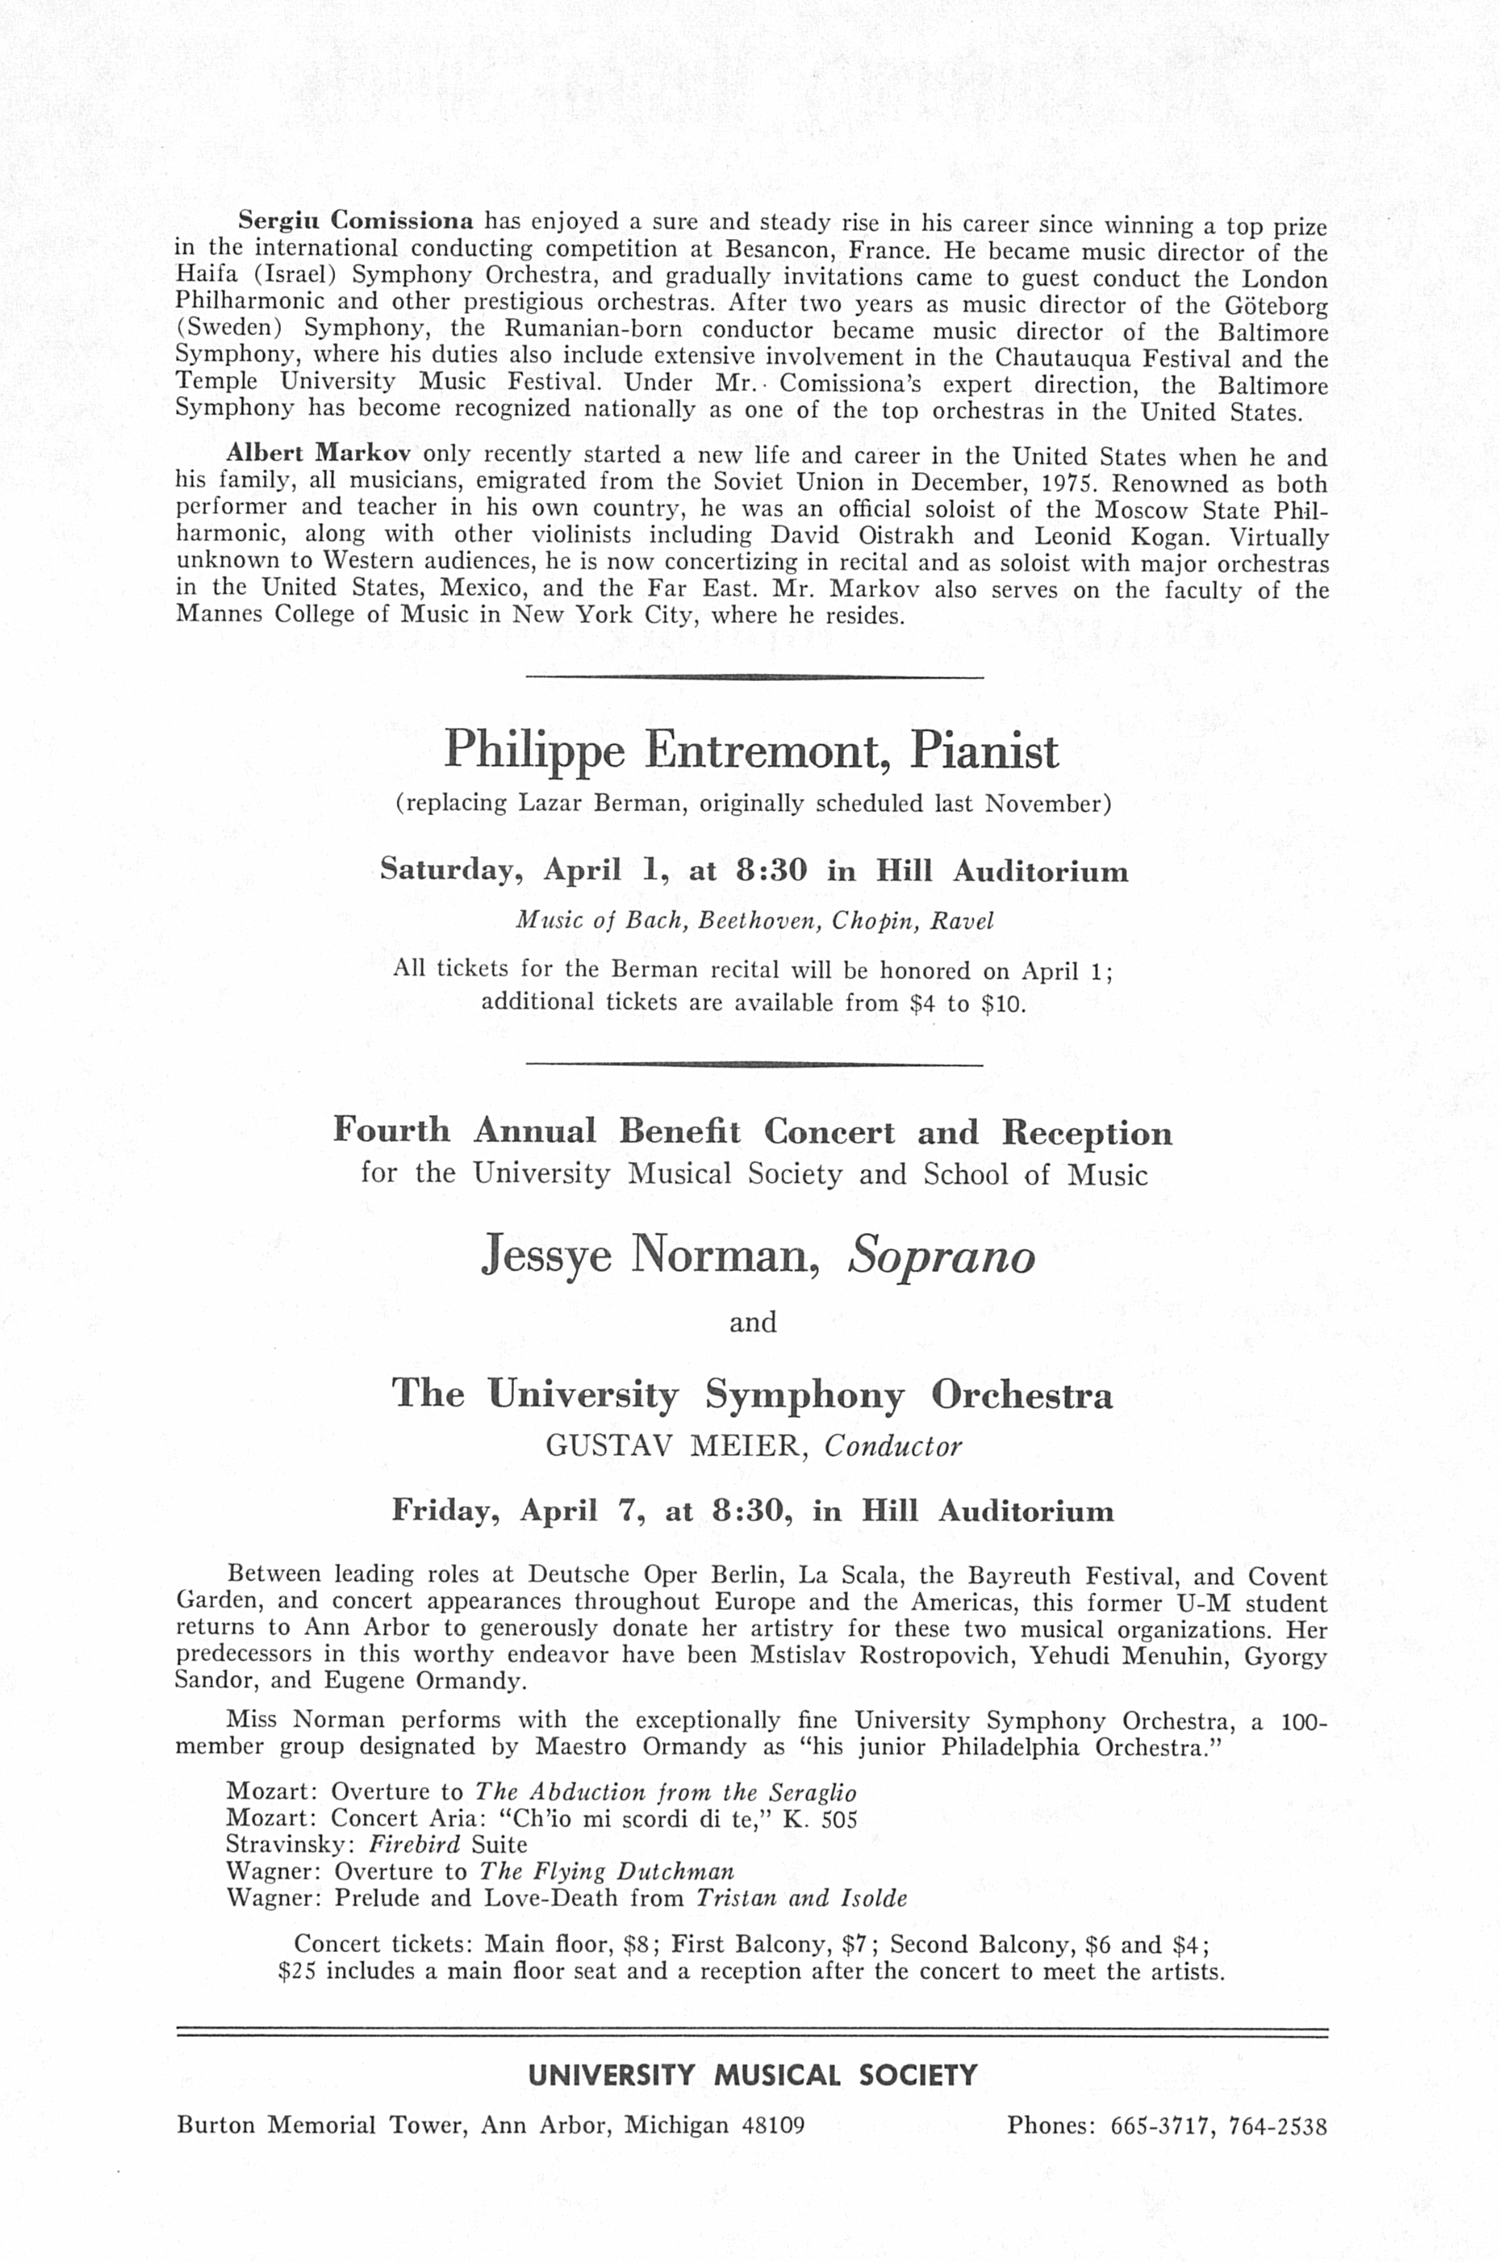 UMS Concert Program, March 19, 1978: Baltimore Symphony Orchestra --  image